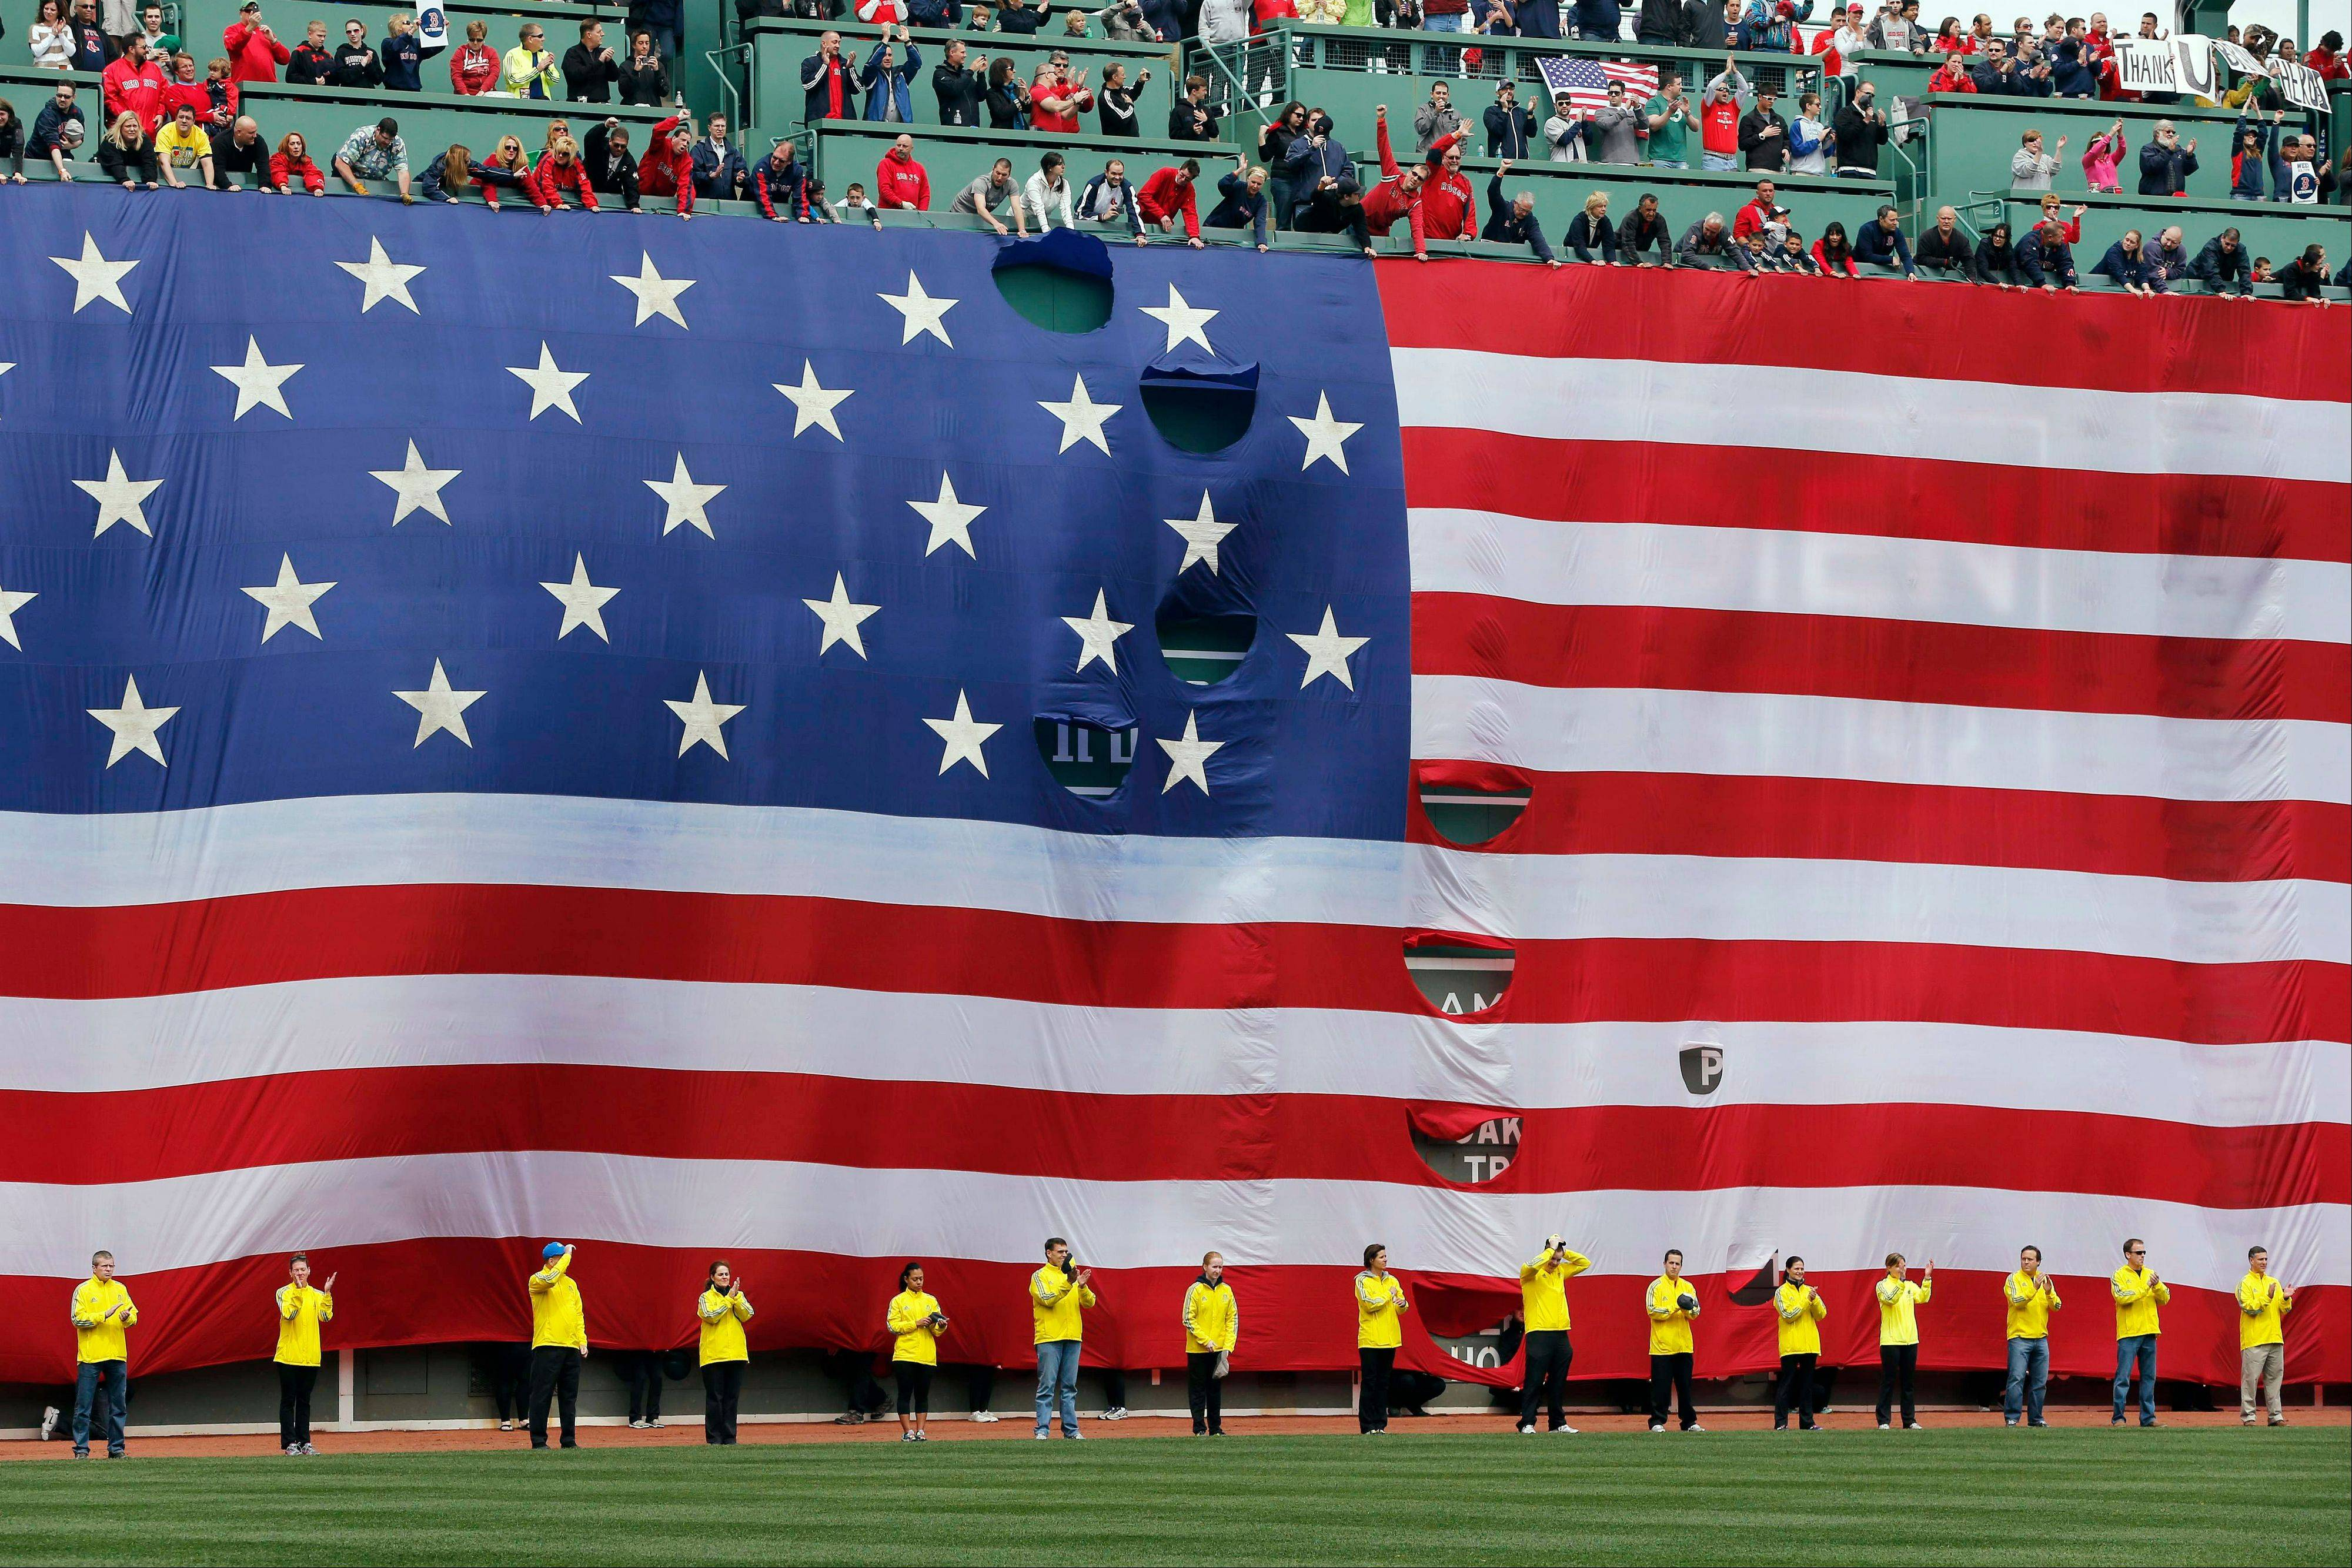 Boston Marathon volunteers stand beneath a giant flag on the outfield wall during a tribute to victims of the Boston Marathon bombings, before a baseball game between the Boston Red Sox and the Kansas City Royals in Boston, Saturday, April 20, 2013.